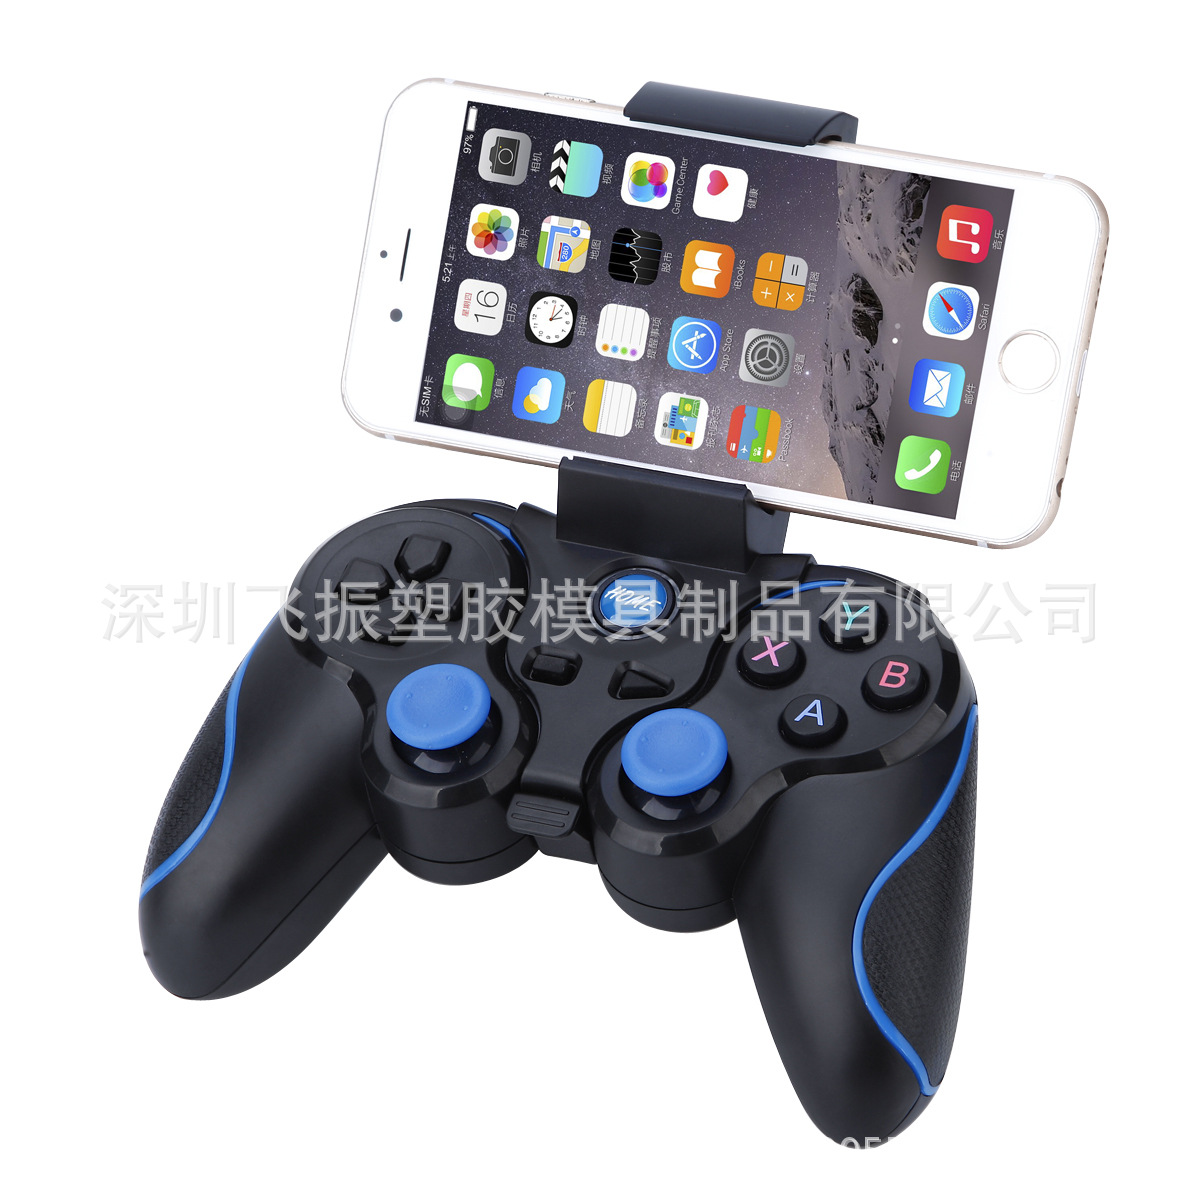 [factory direct] Android game handle IOS handle handle handle